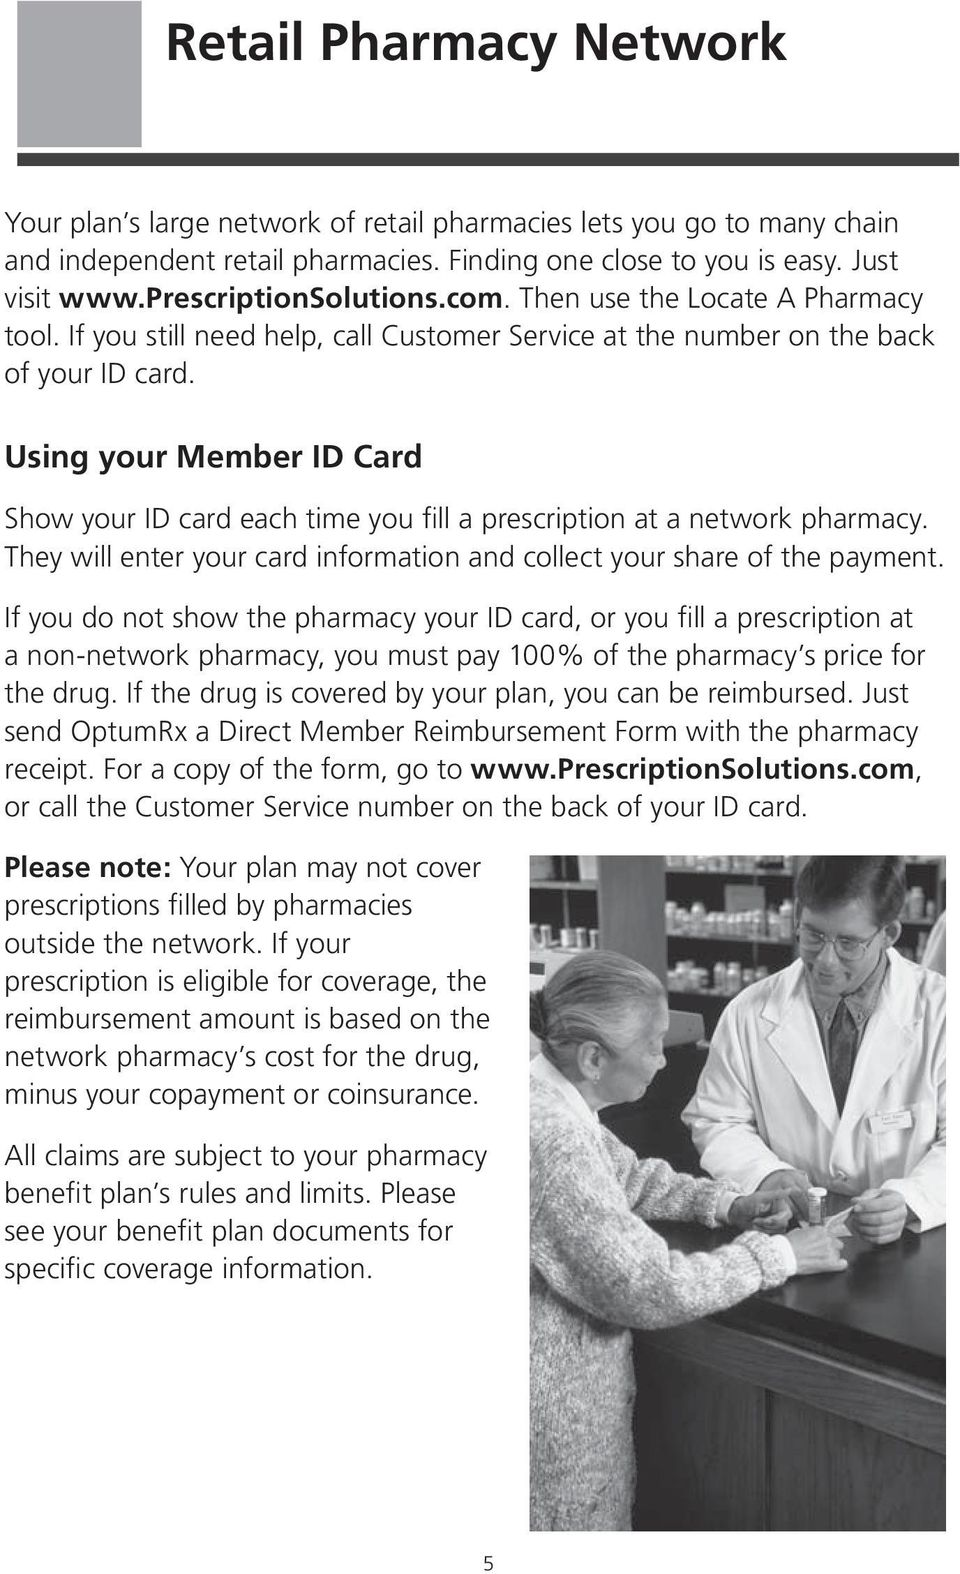 Using your Member ID Card Show your ID card each time you fill a prescription at a network pharmacy. They will enter your card information and collect your share of the payment.